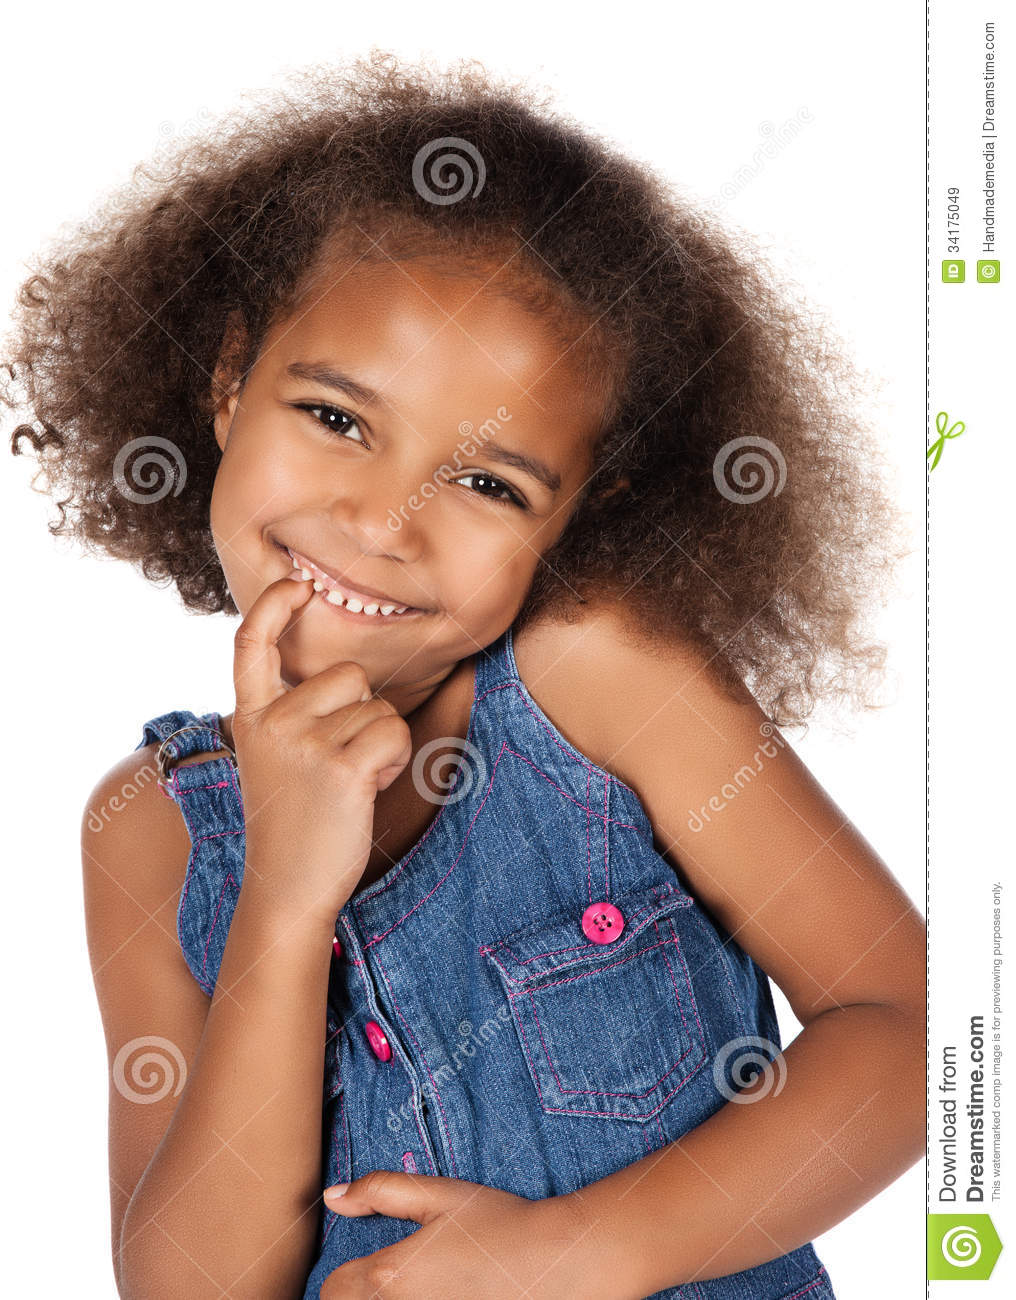 Cute African Girl Stock Image Image Of Beautiful Innocent